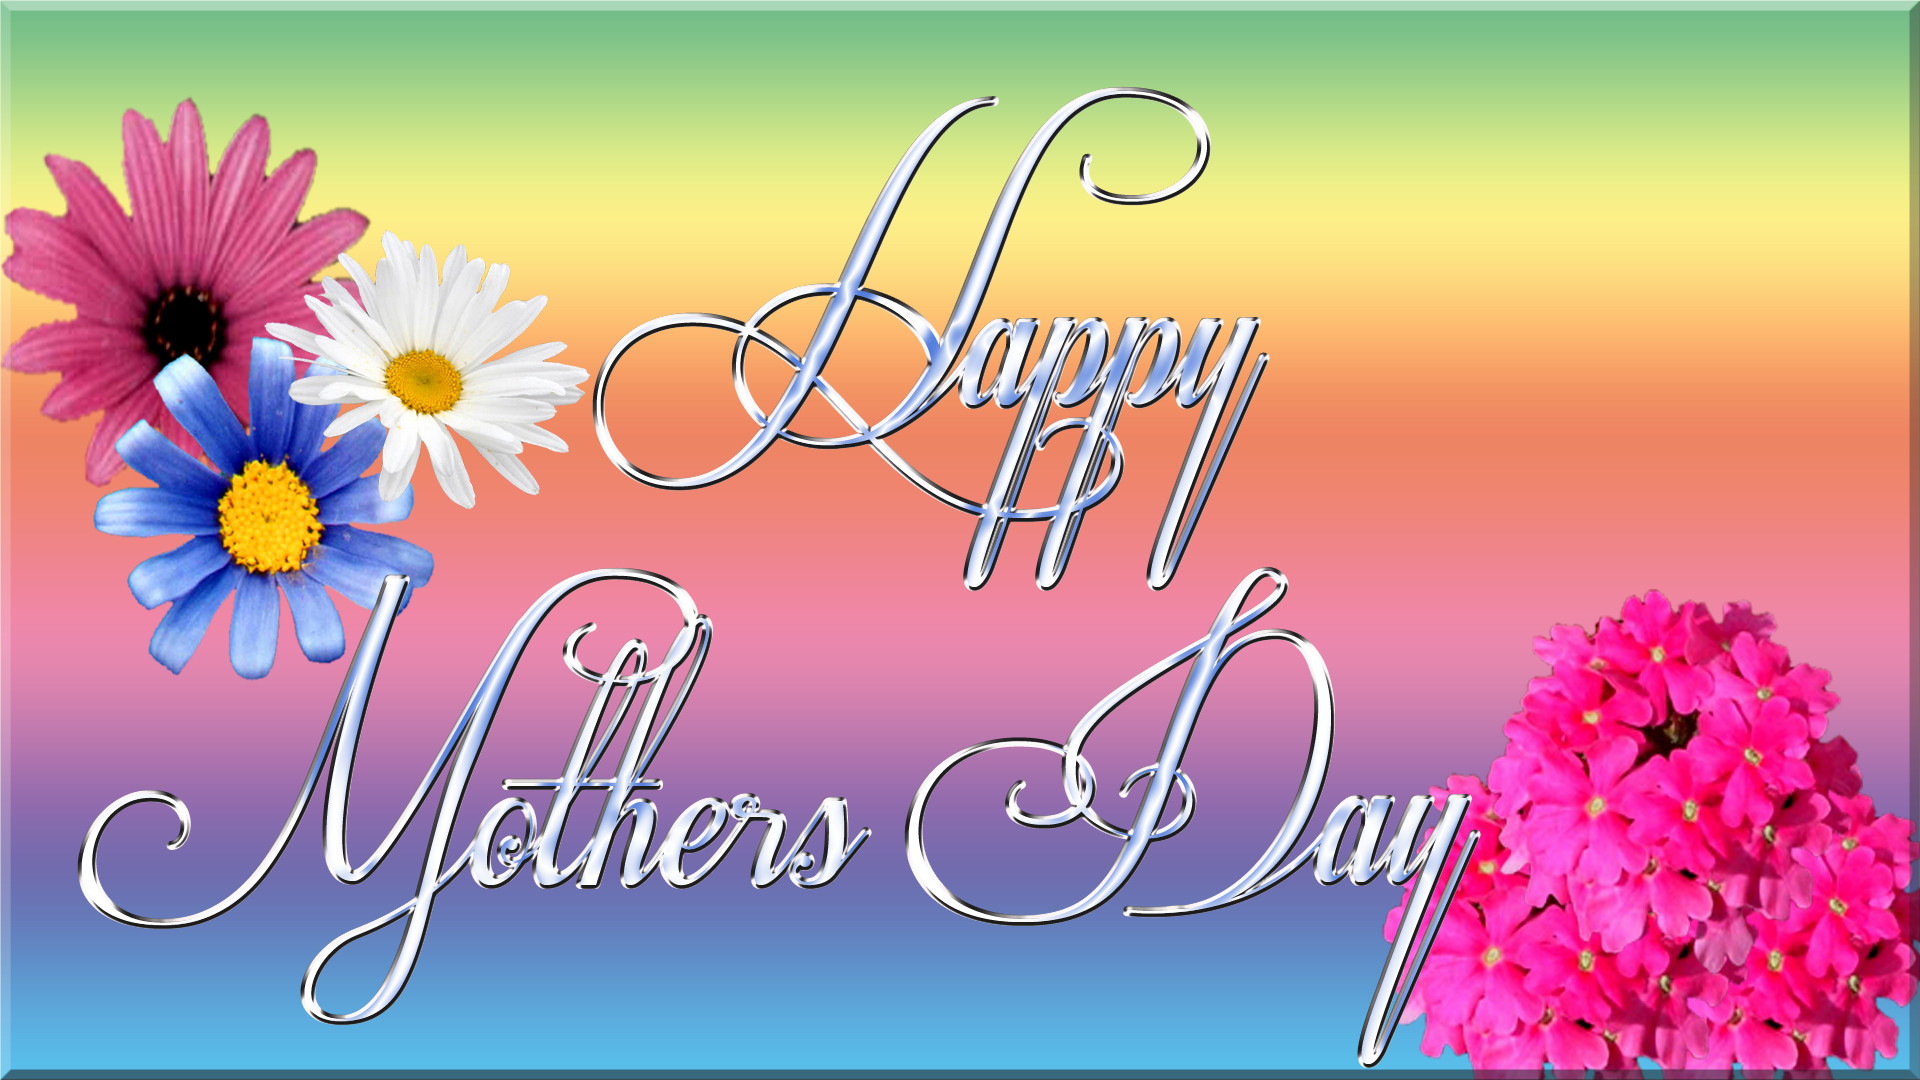 Res: 1920x1080, happy 2018 mothers day wishes hd wallpaper